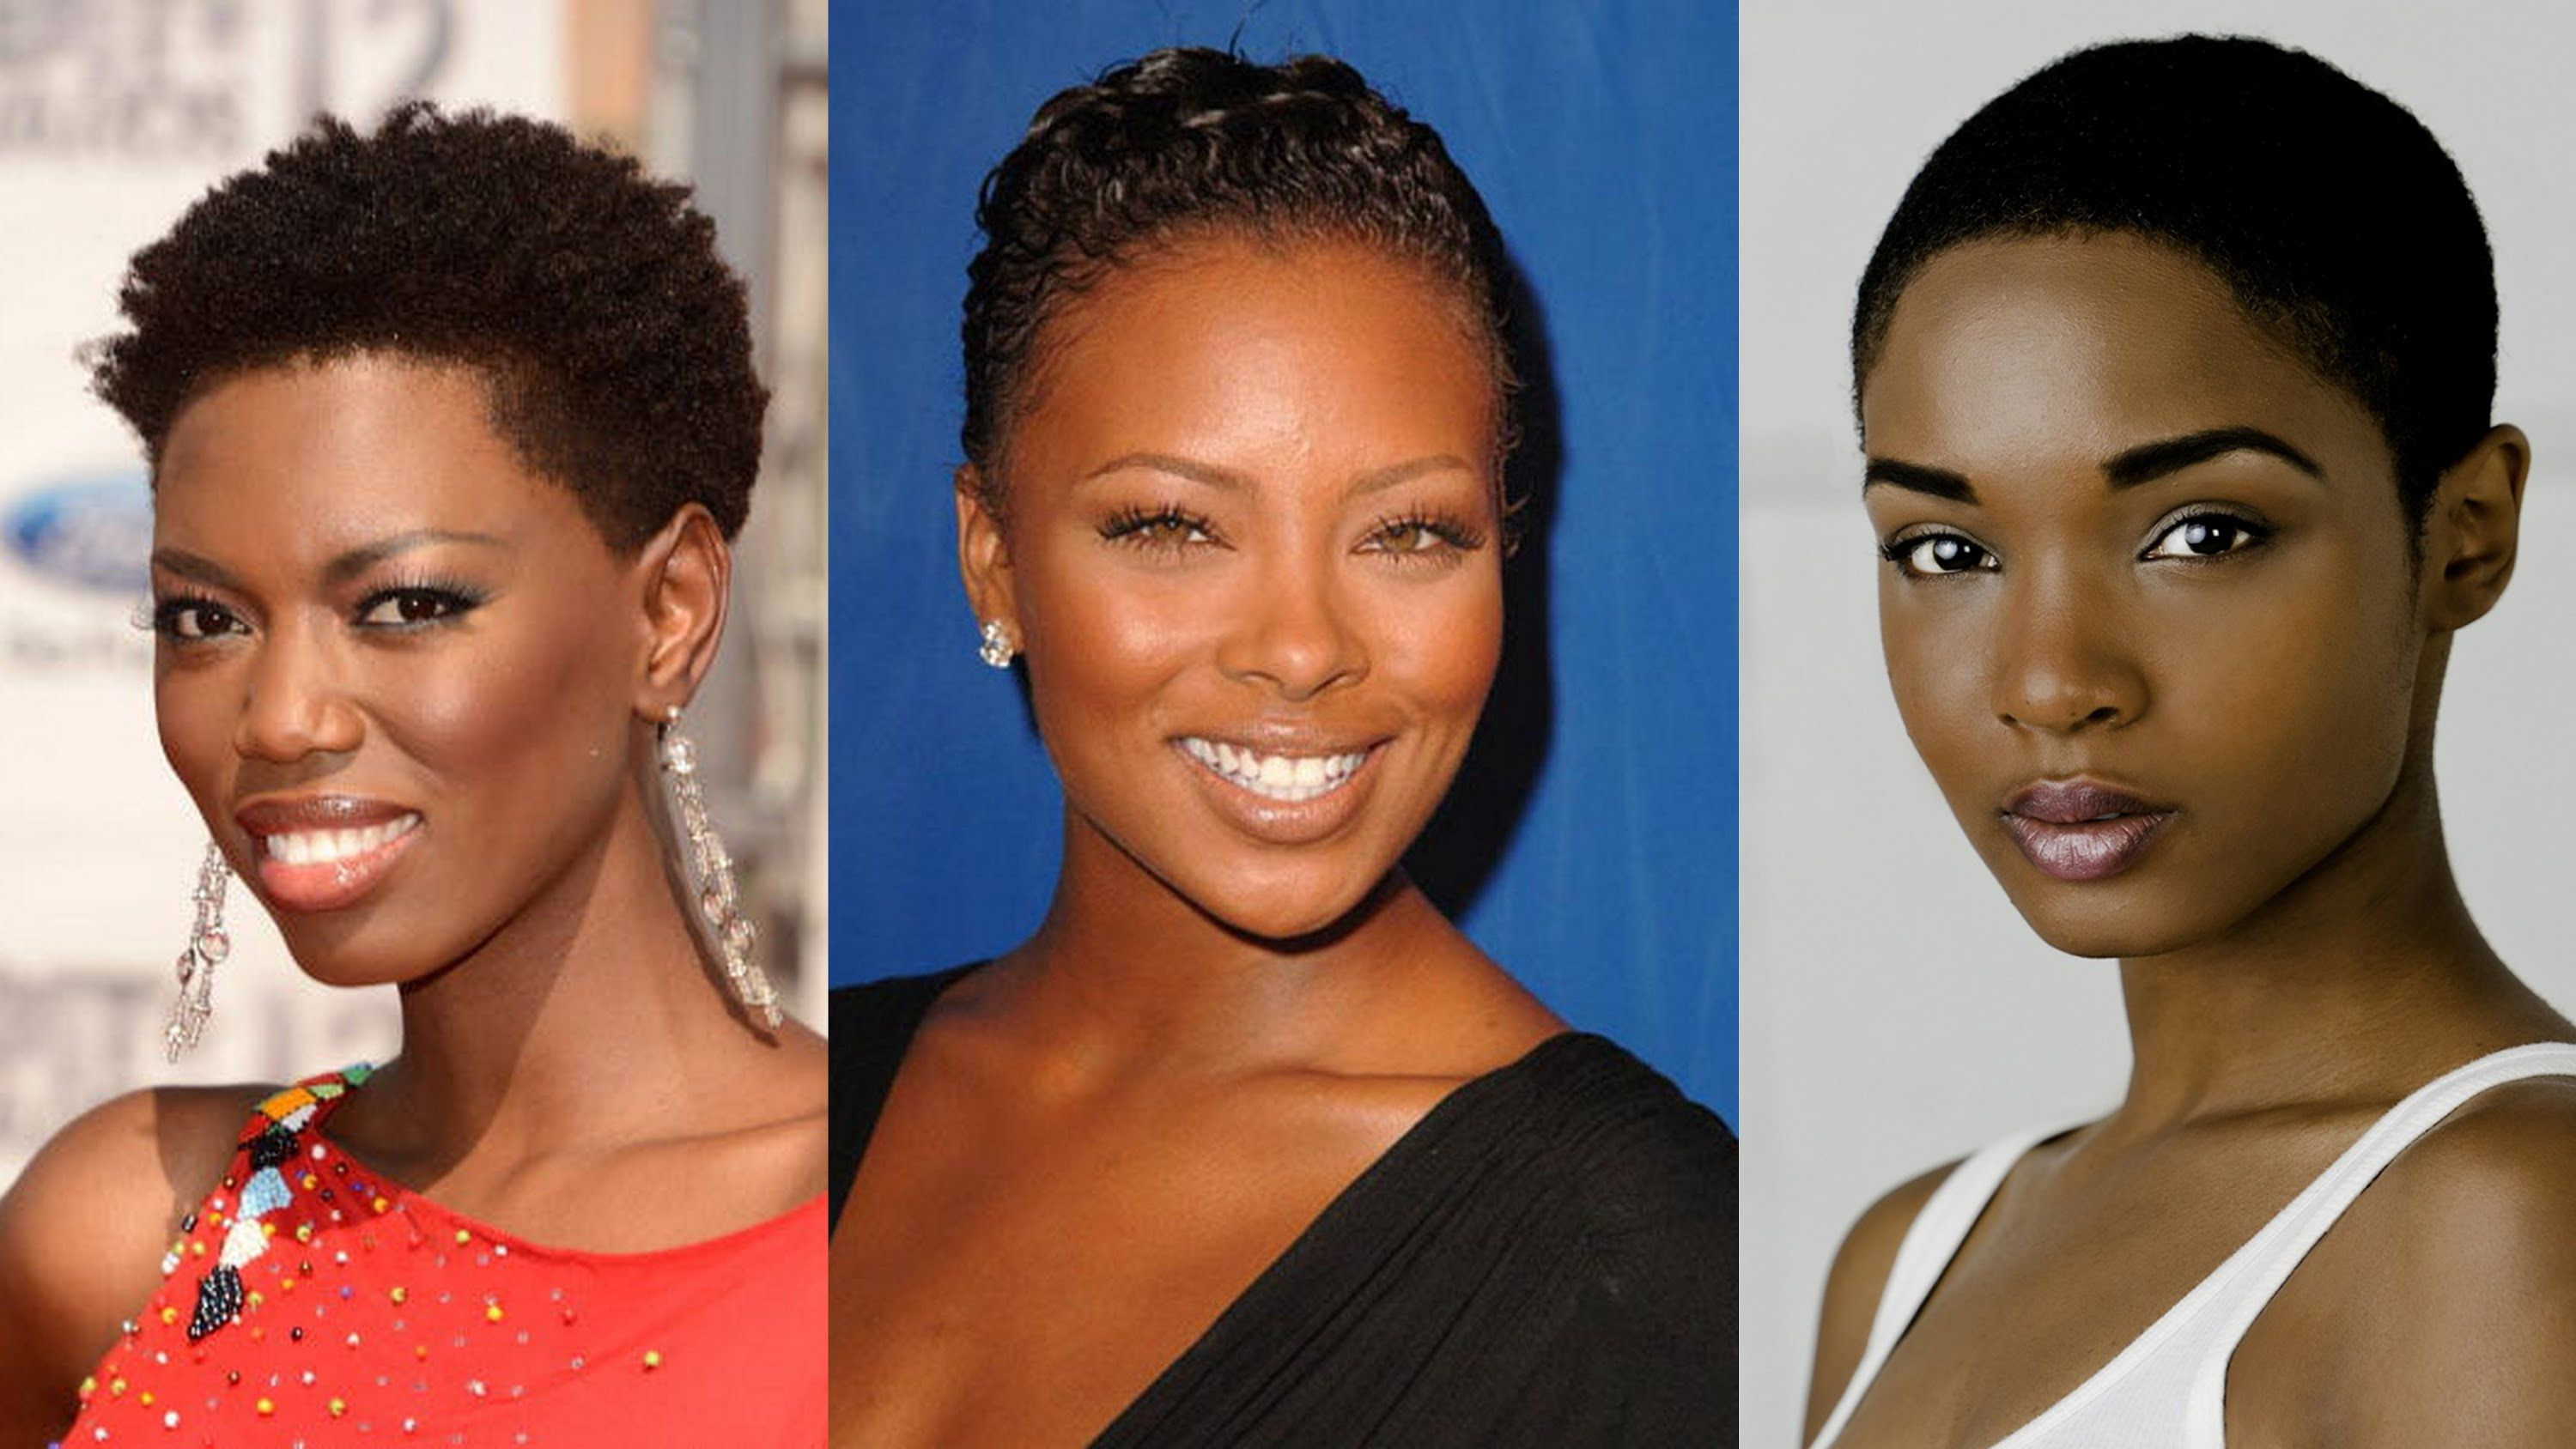 Short Natural Hairstyles For Black Women Glamorous 25 Best Short Natural Hairstyles For Black Women  Natural Hair Care